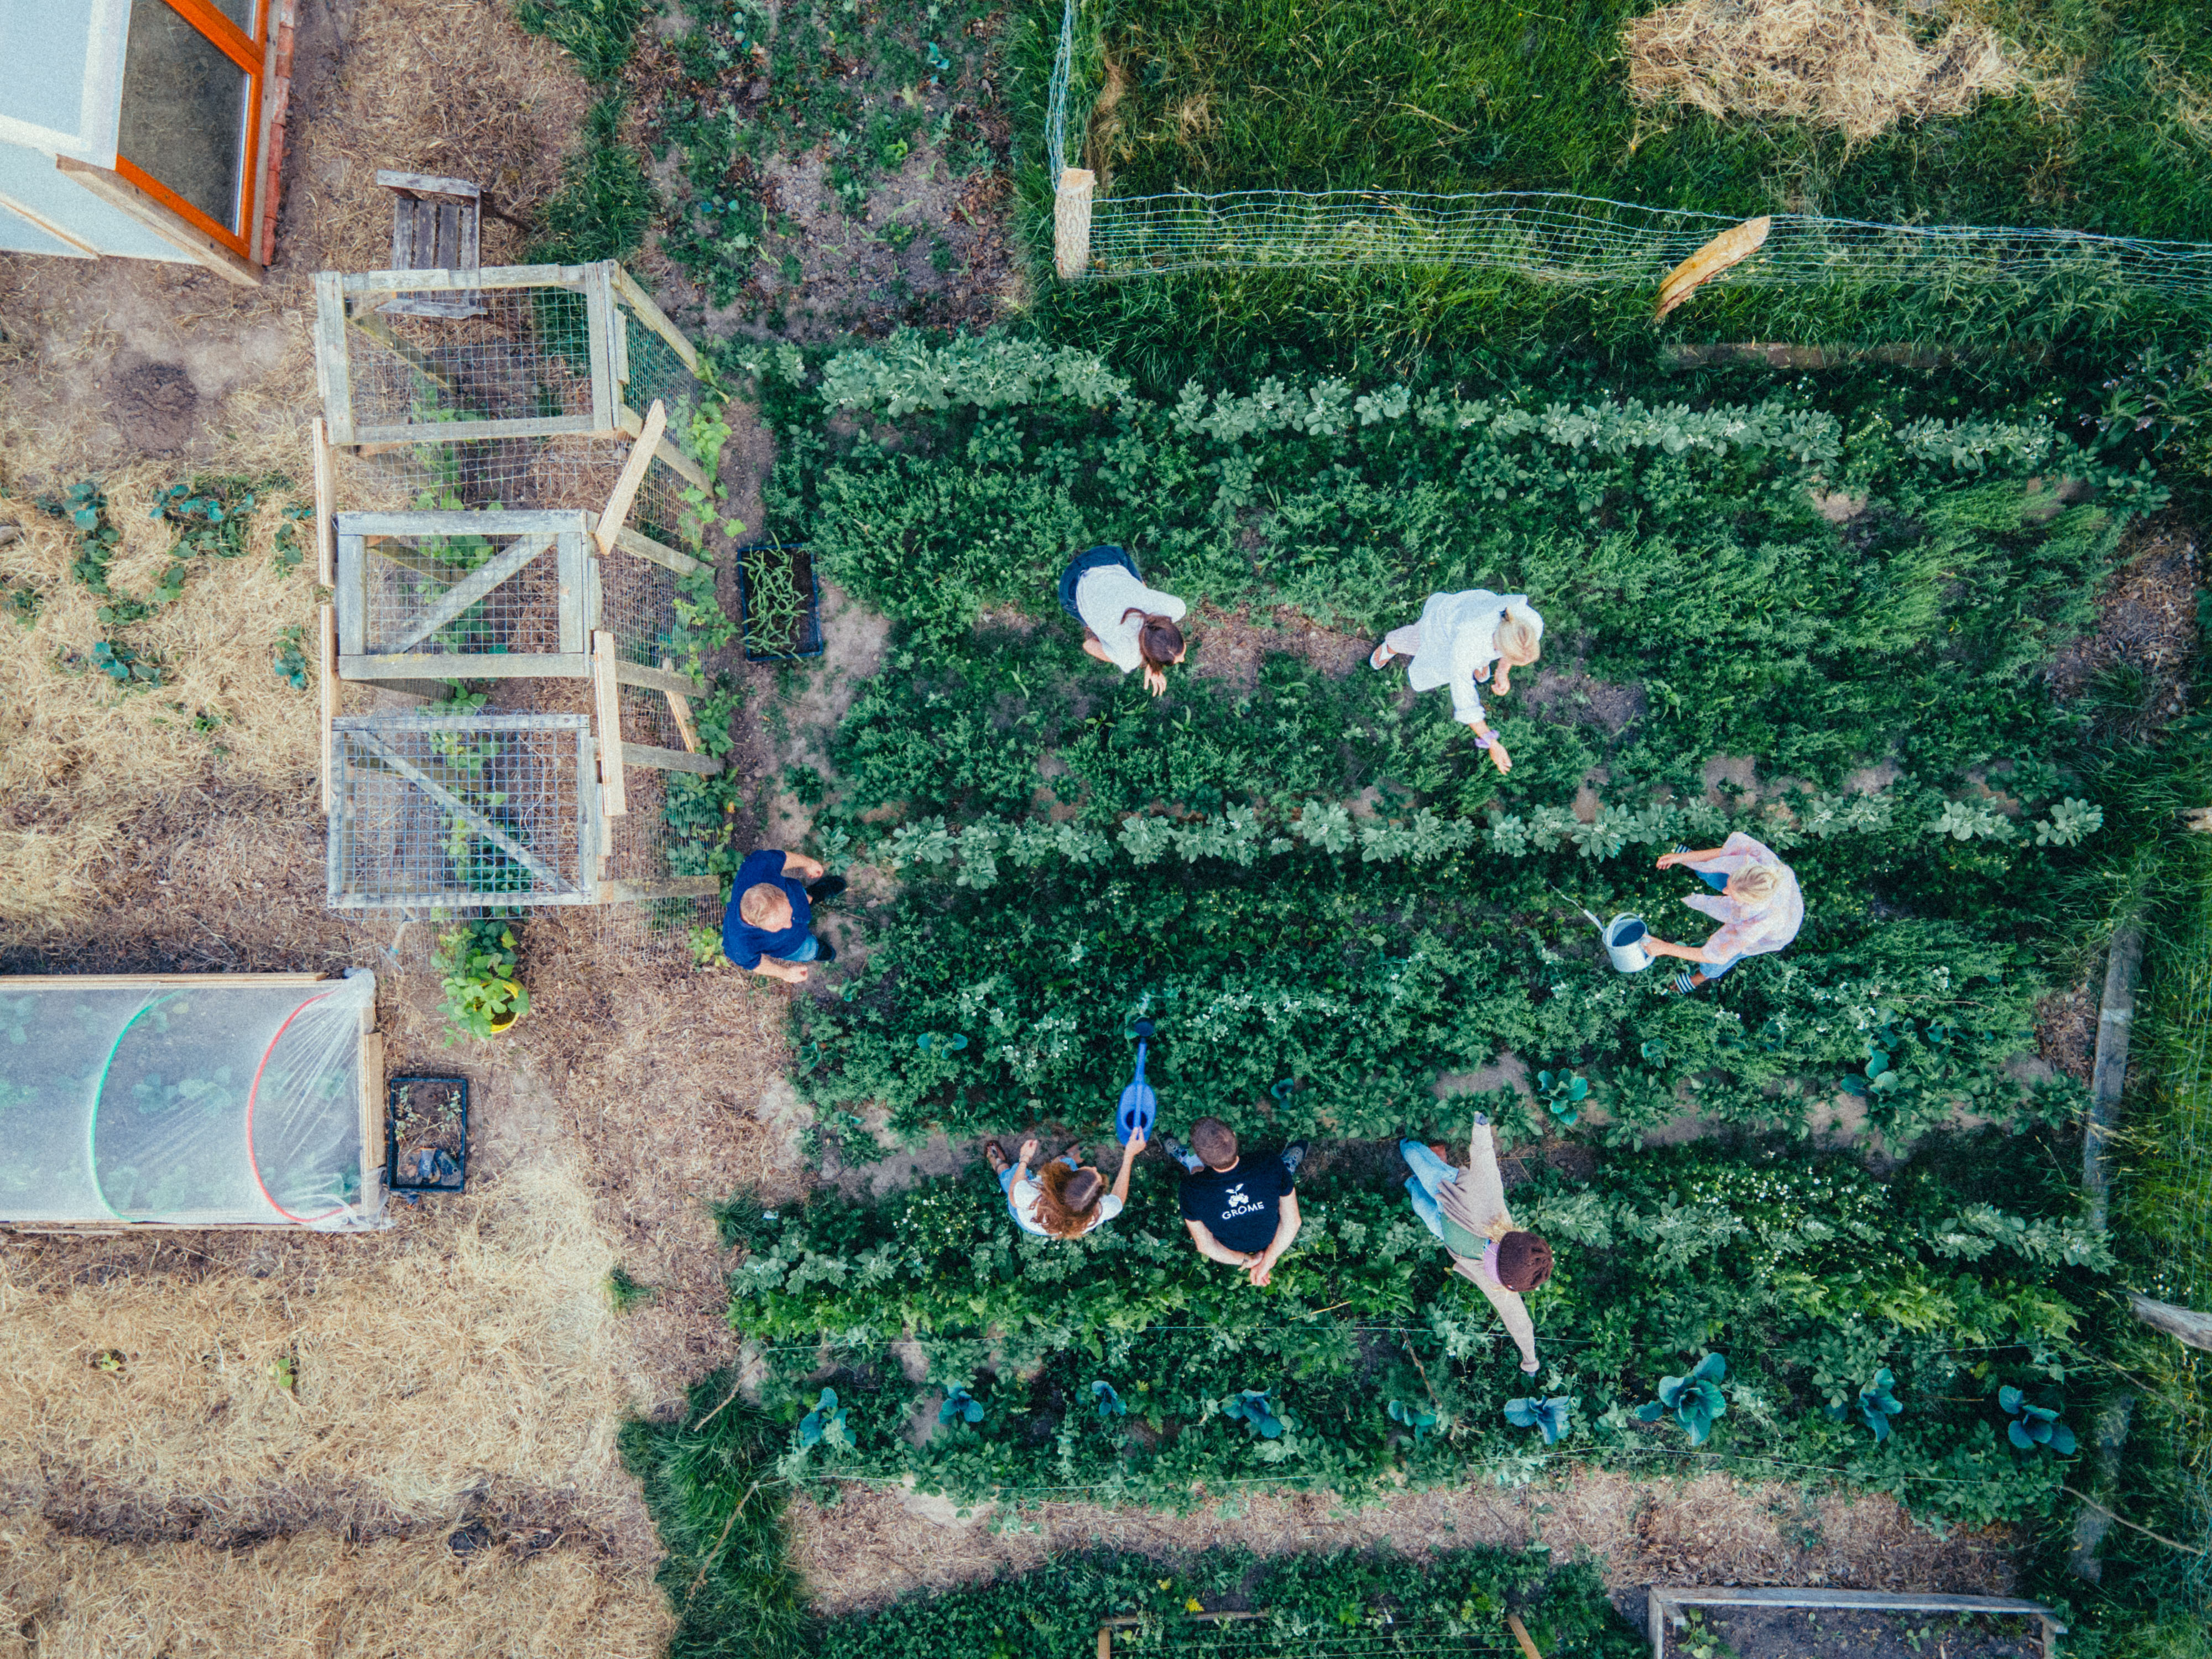 Aerial view of people in circle watering the garden